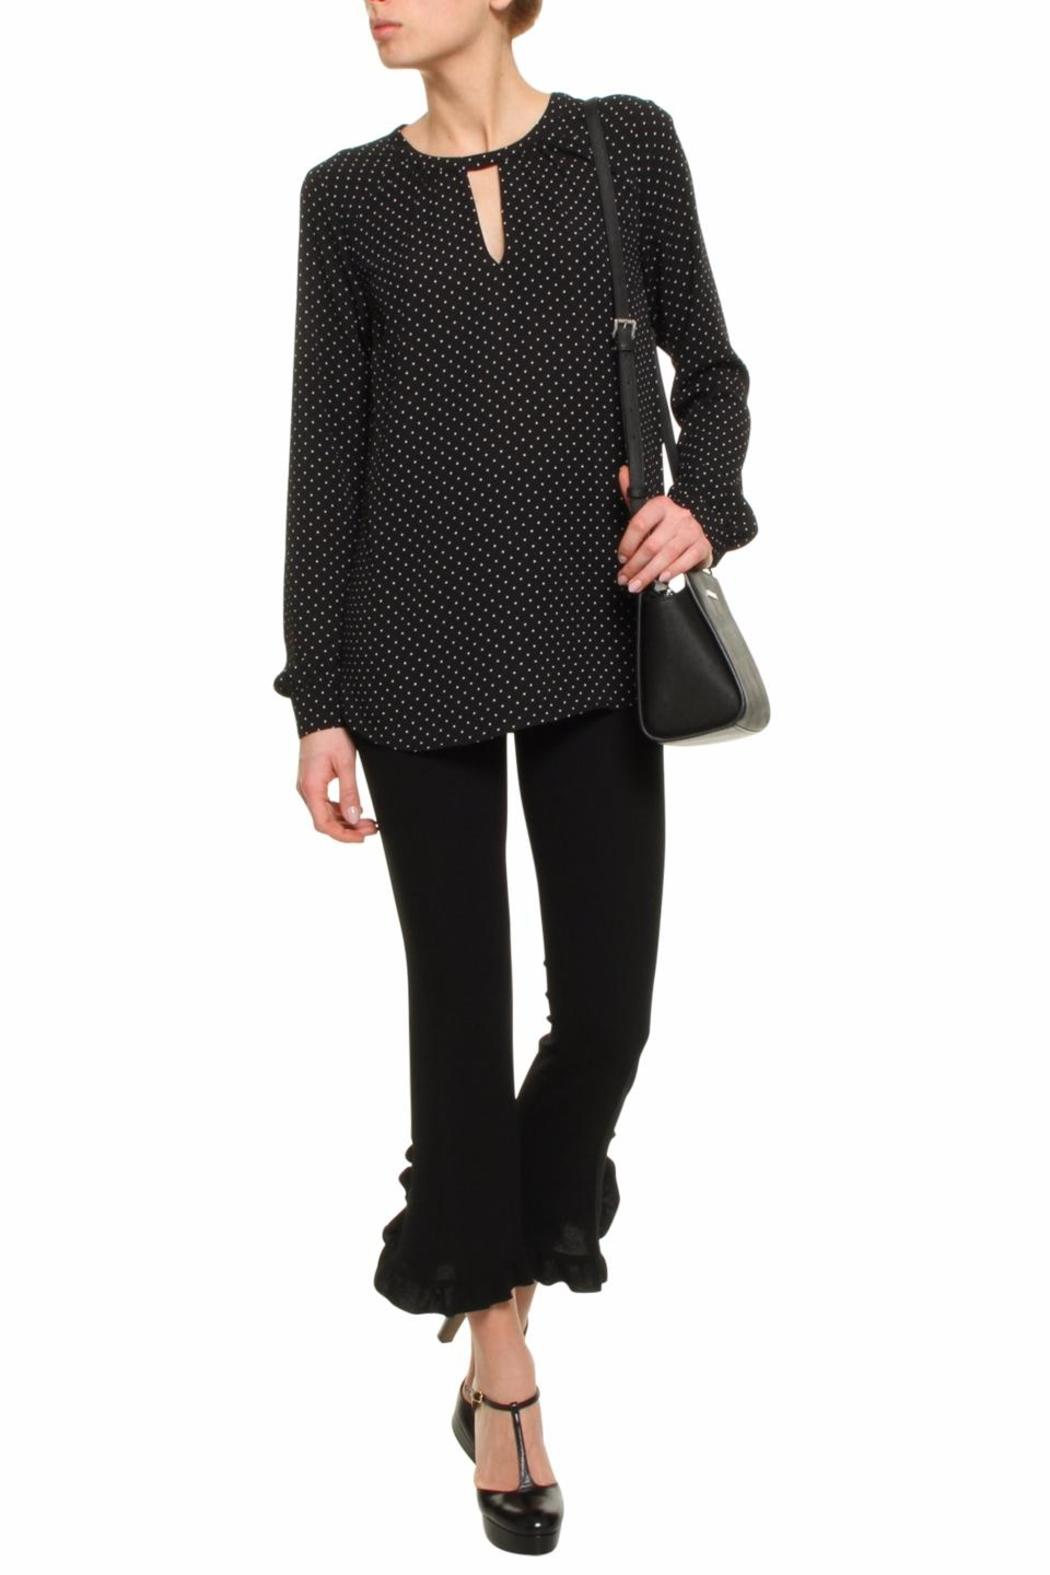 Michael by Michael Kors Polka Dot Blouse - Main Image